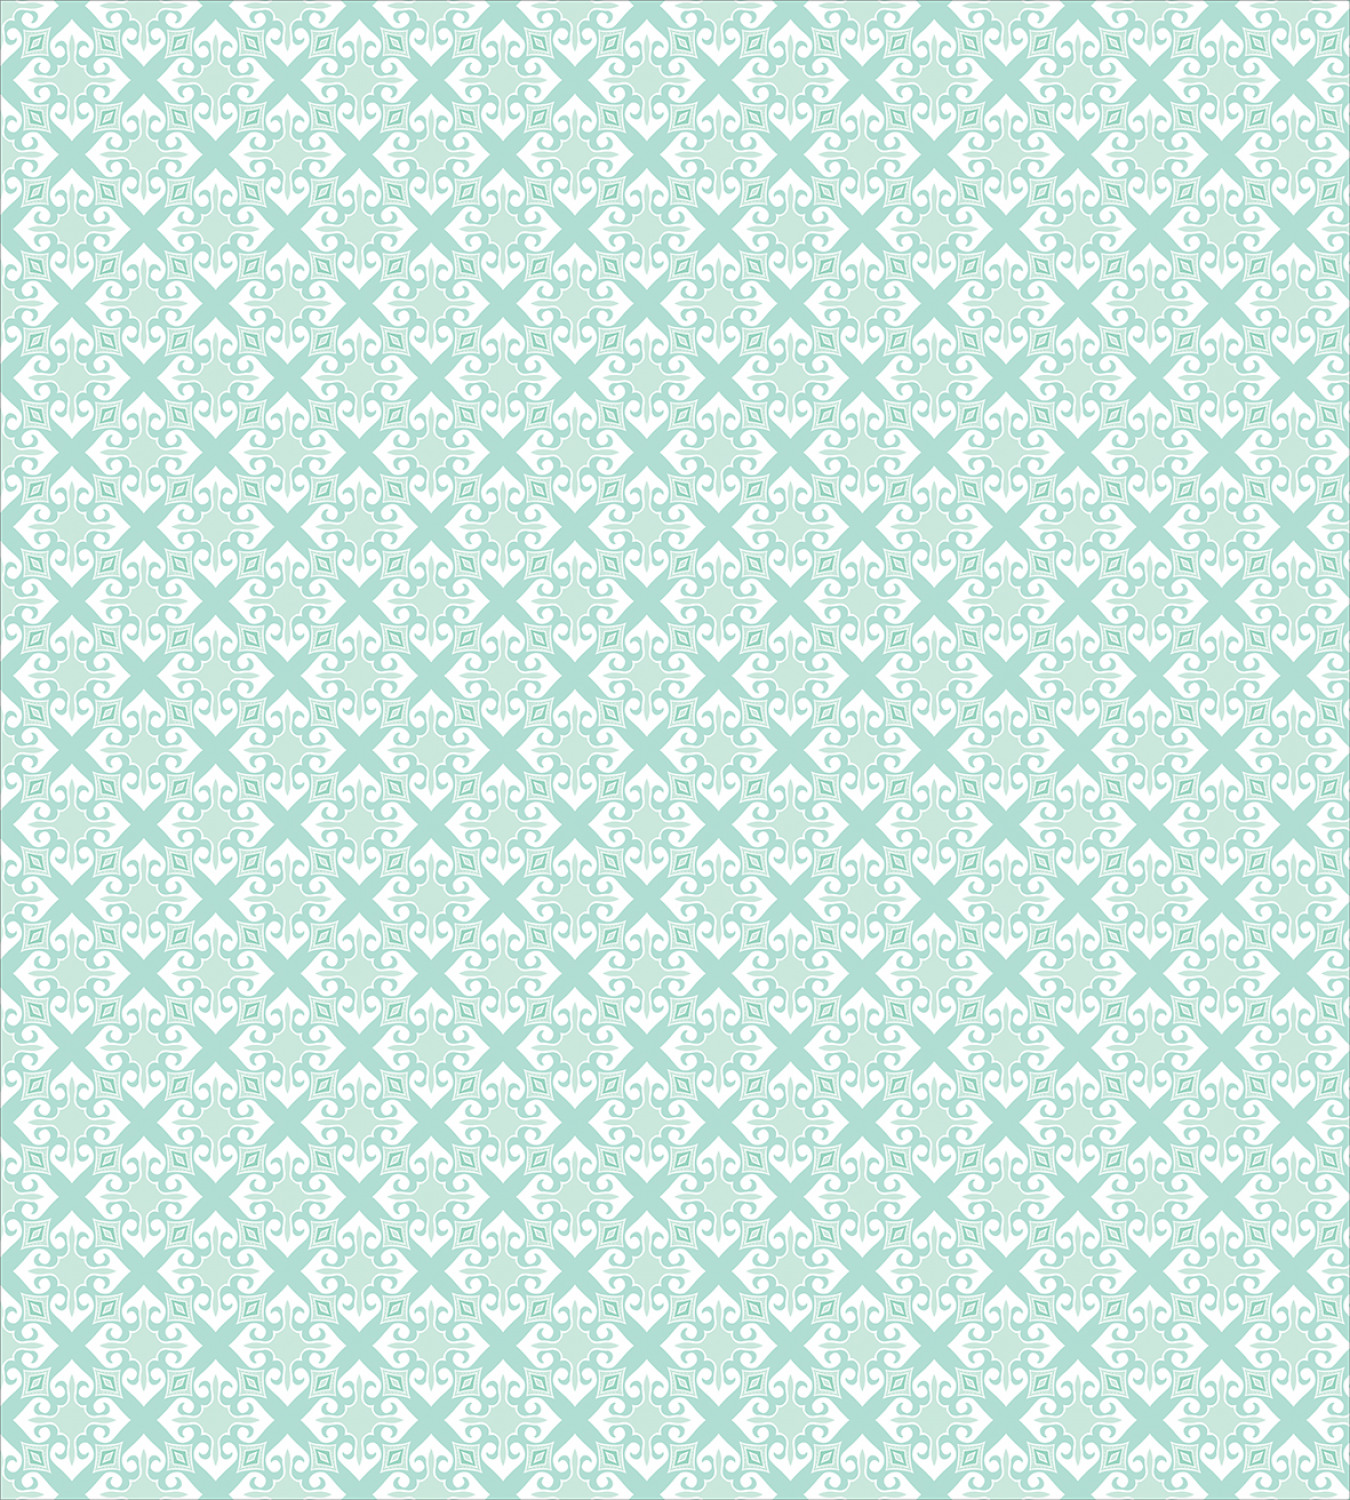 Teal-and-White-Duvet-Cover-Set-Twin-Queen-King-Sizes-with-Pillow-Shams-Ambesonne thumbnail 6